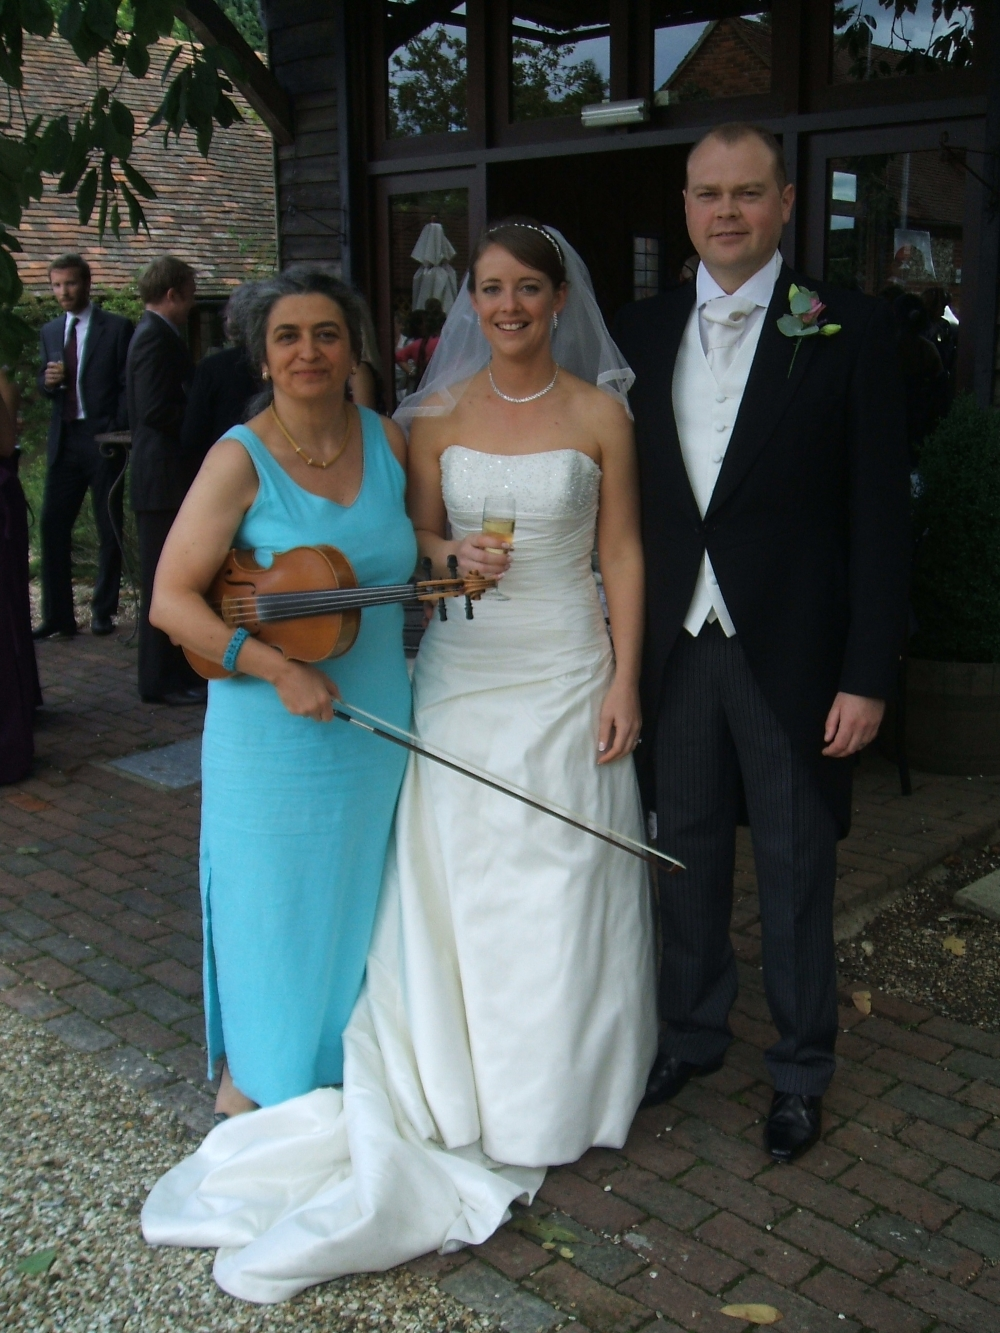 Wedding musician with bride and groom at Bix Manor, near Oxford